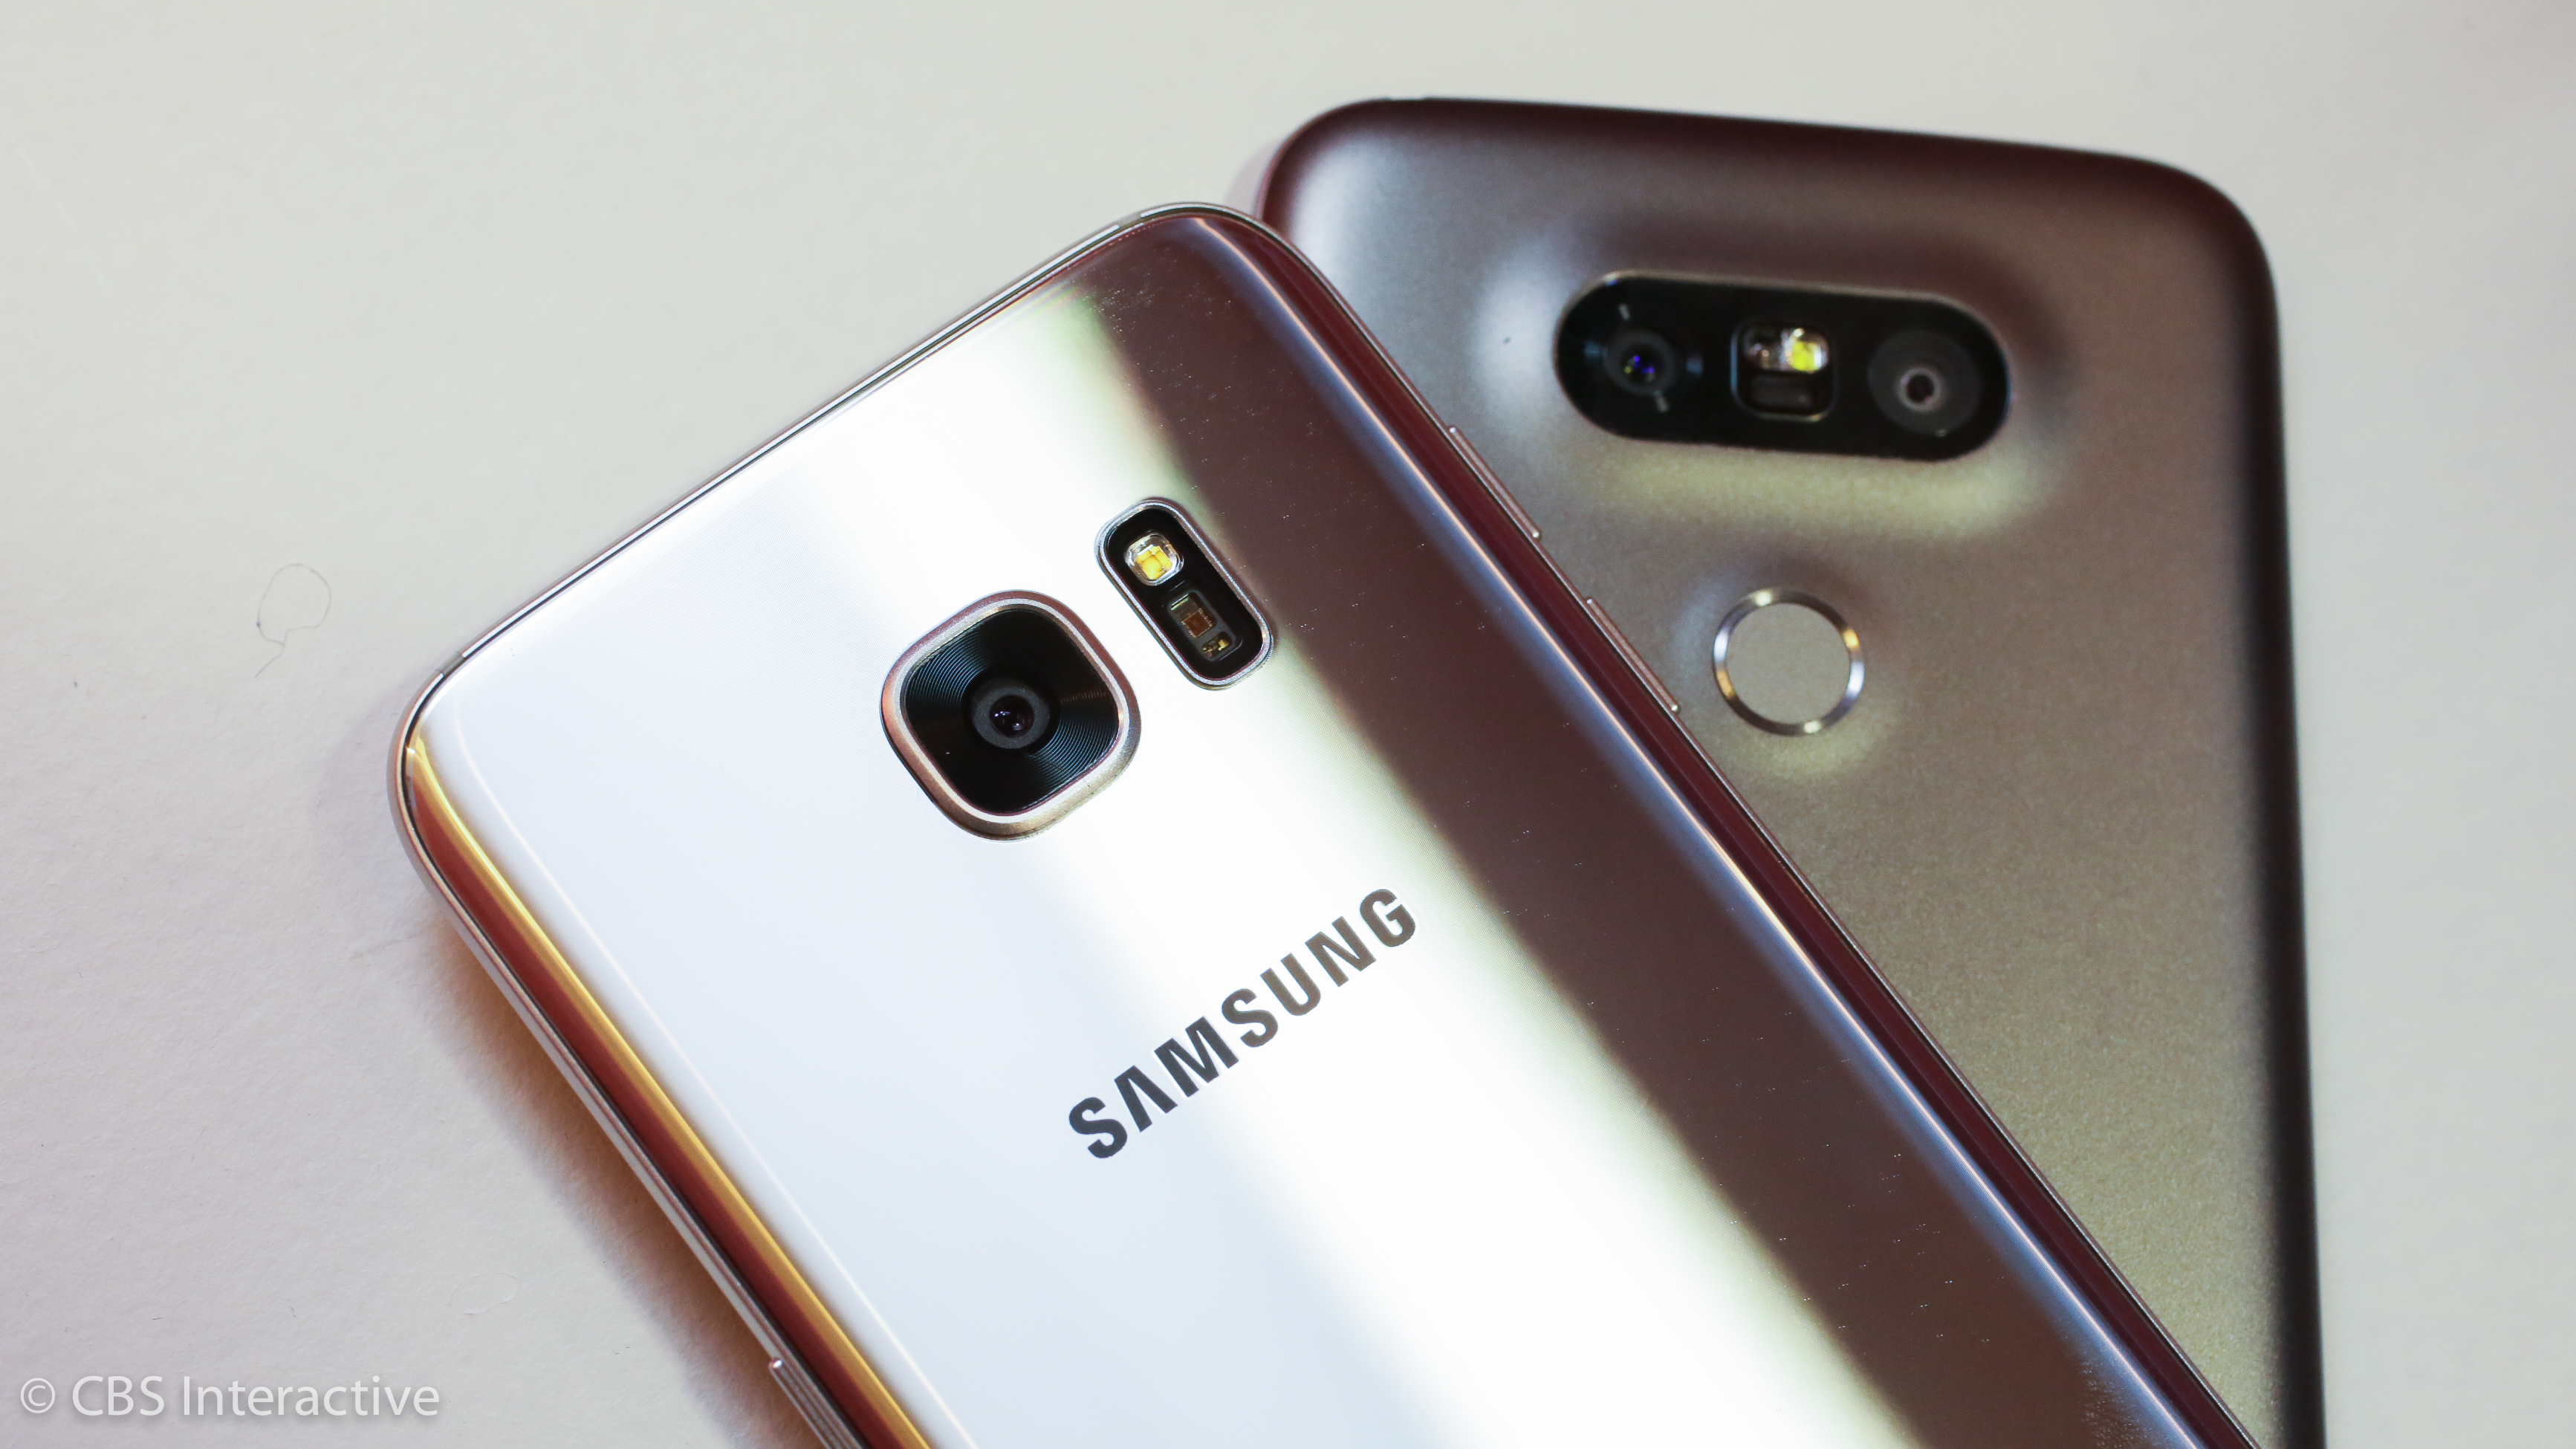 Samsung Galaxy S7 and LG G5 phones